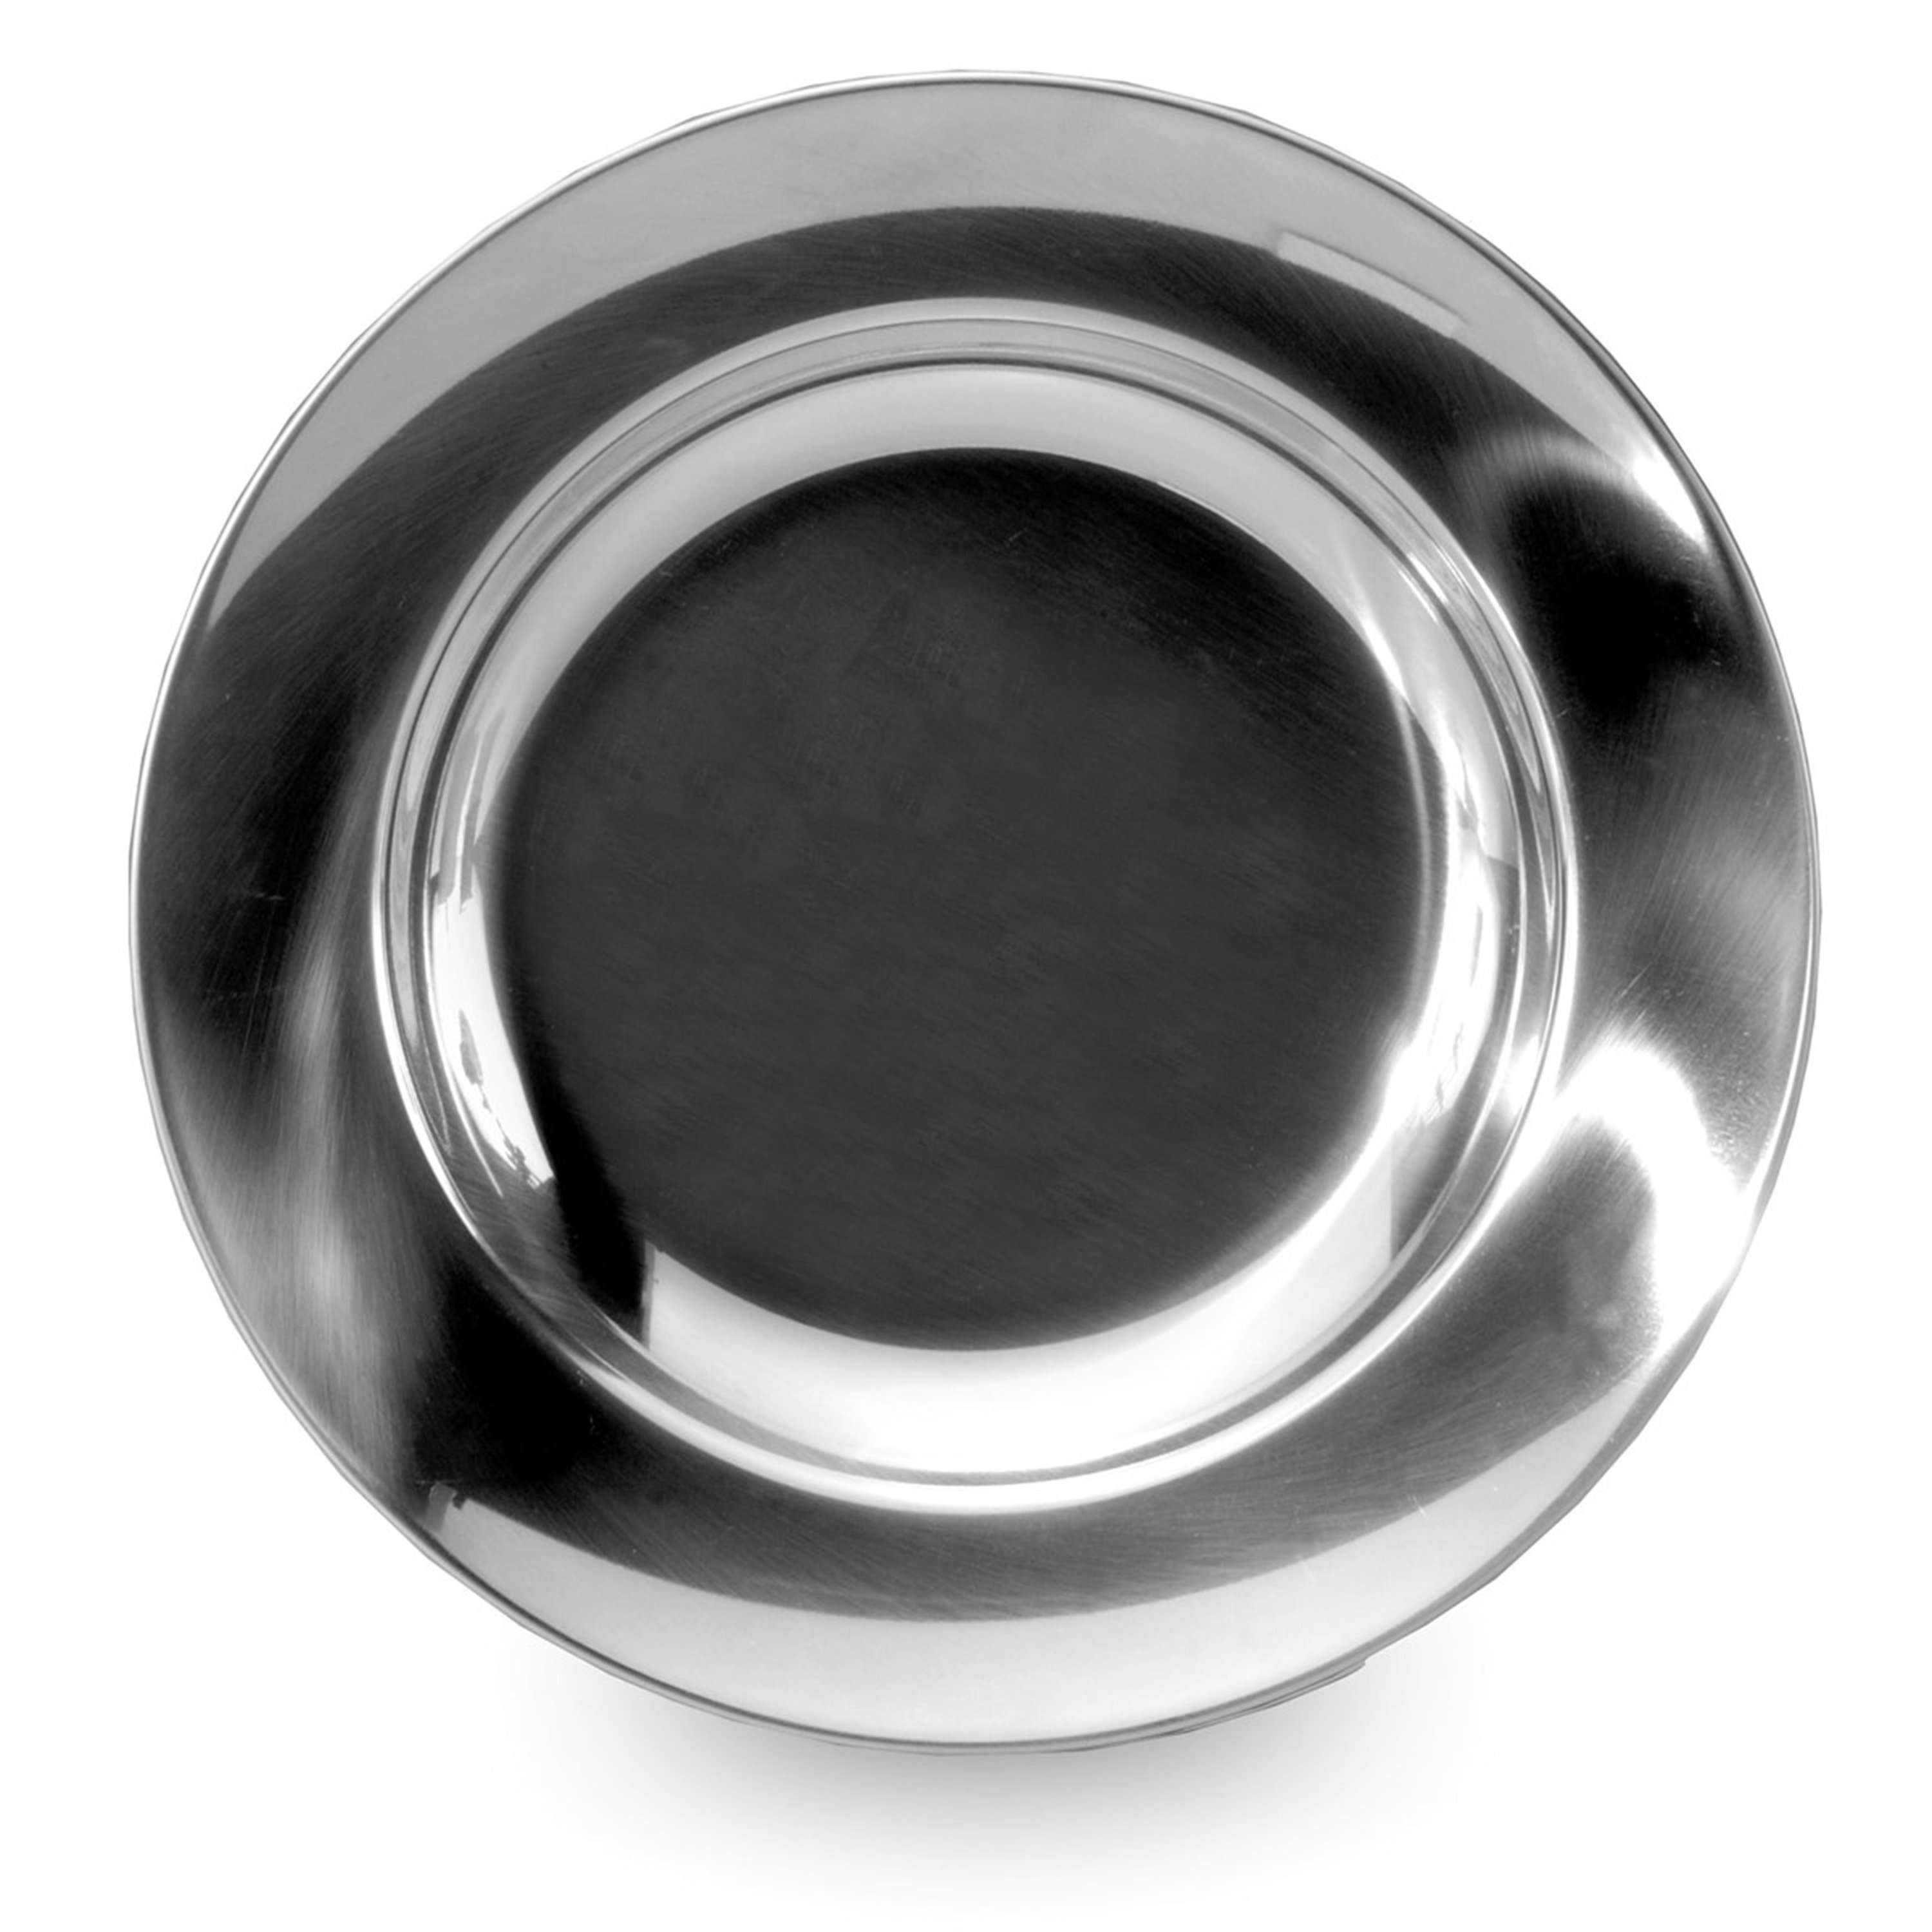 LIFEVENTURE Stainless Steel Plate